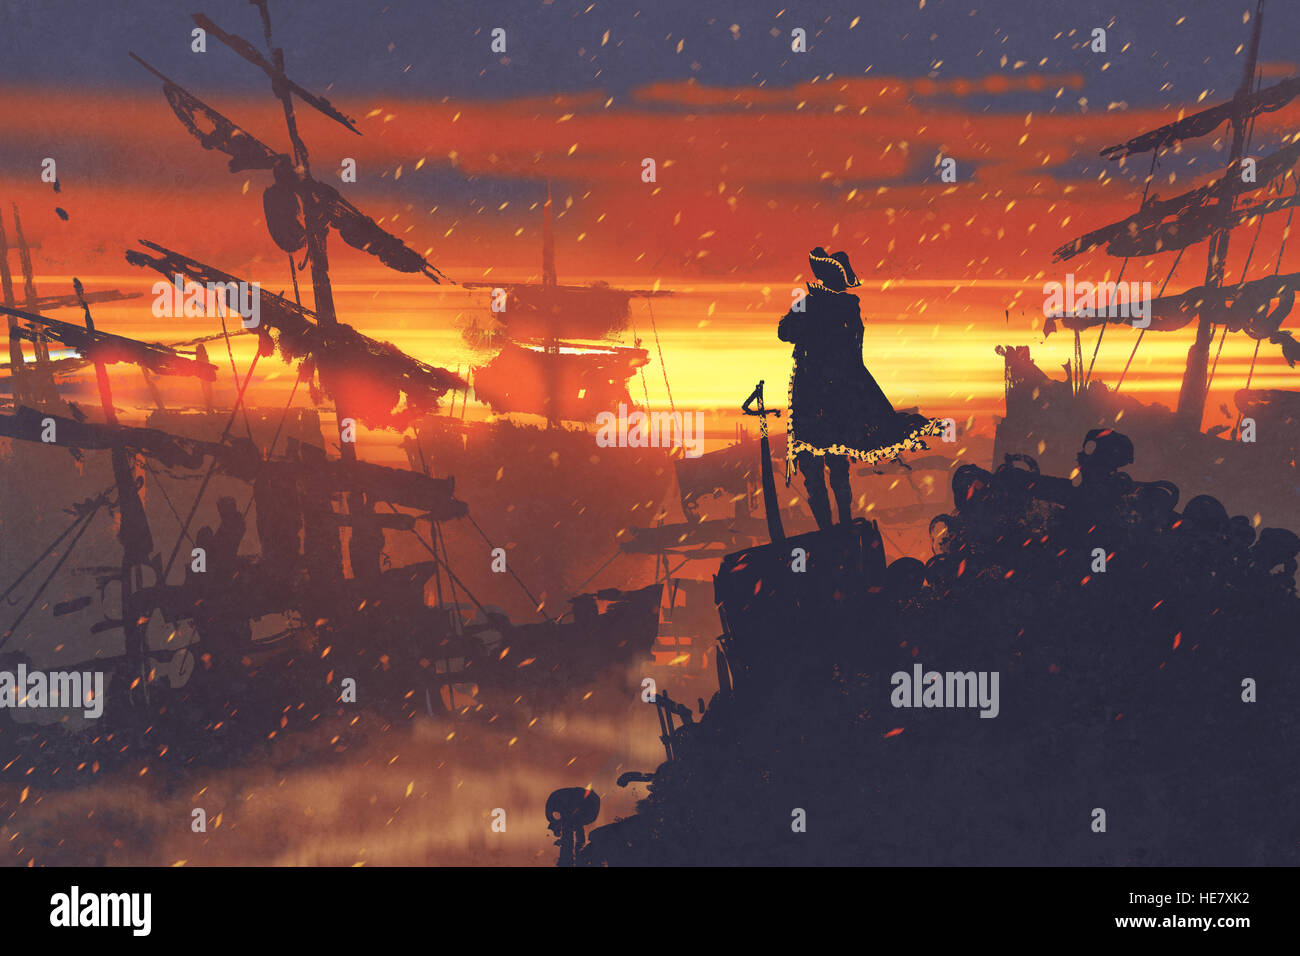 pirate standing on treasure pile against ruined ships at sunset,illustration painting - Stock Image